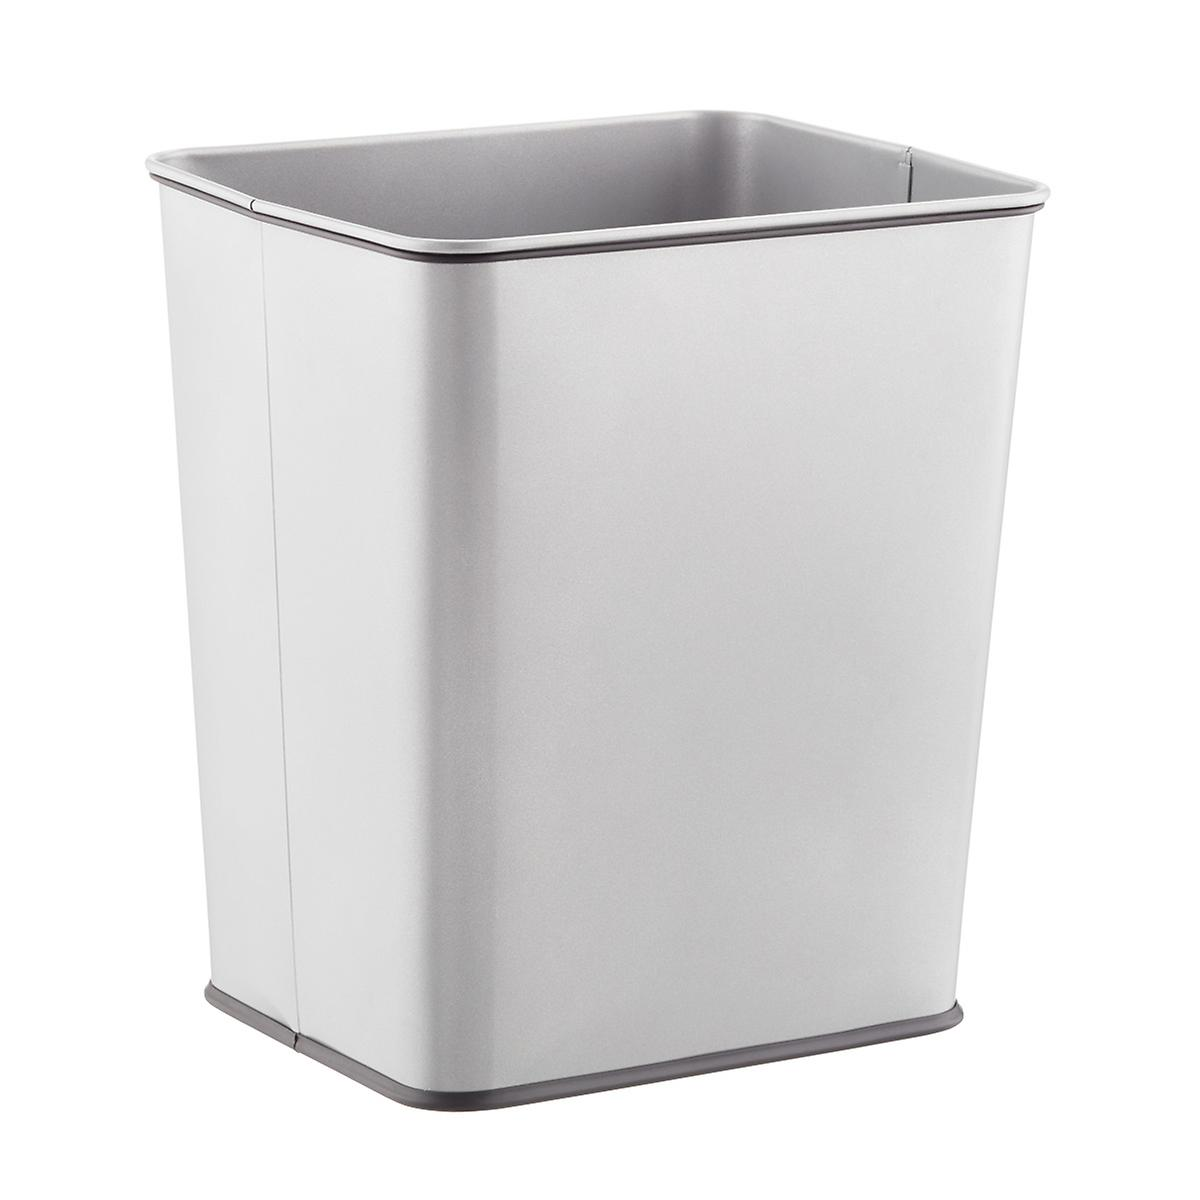 Polder Silver 7 gal. Rectangular Undercounter Trash Can